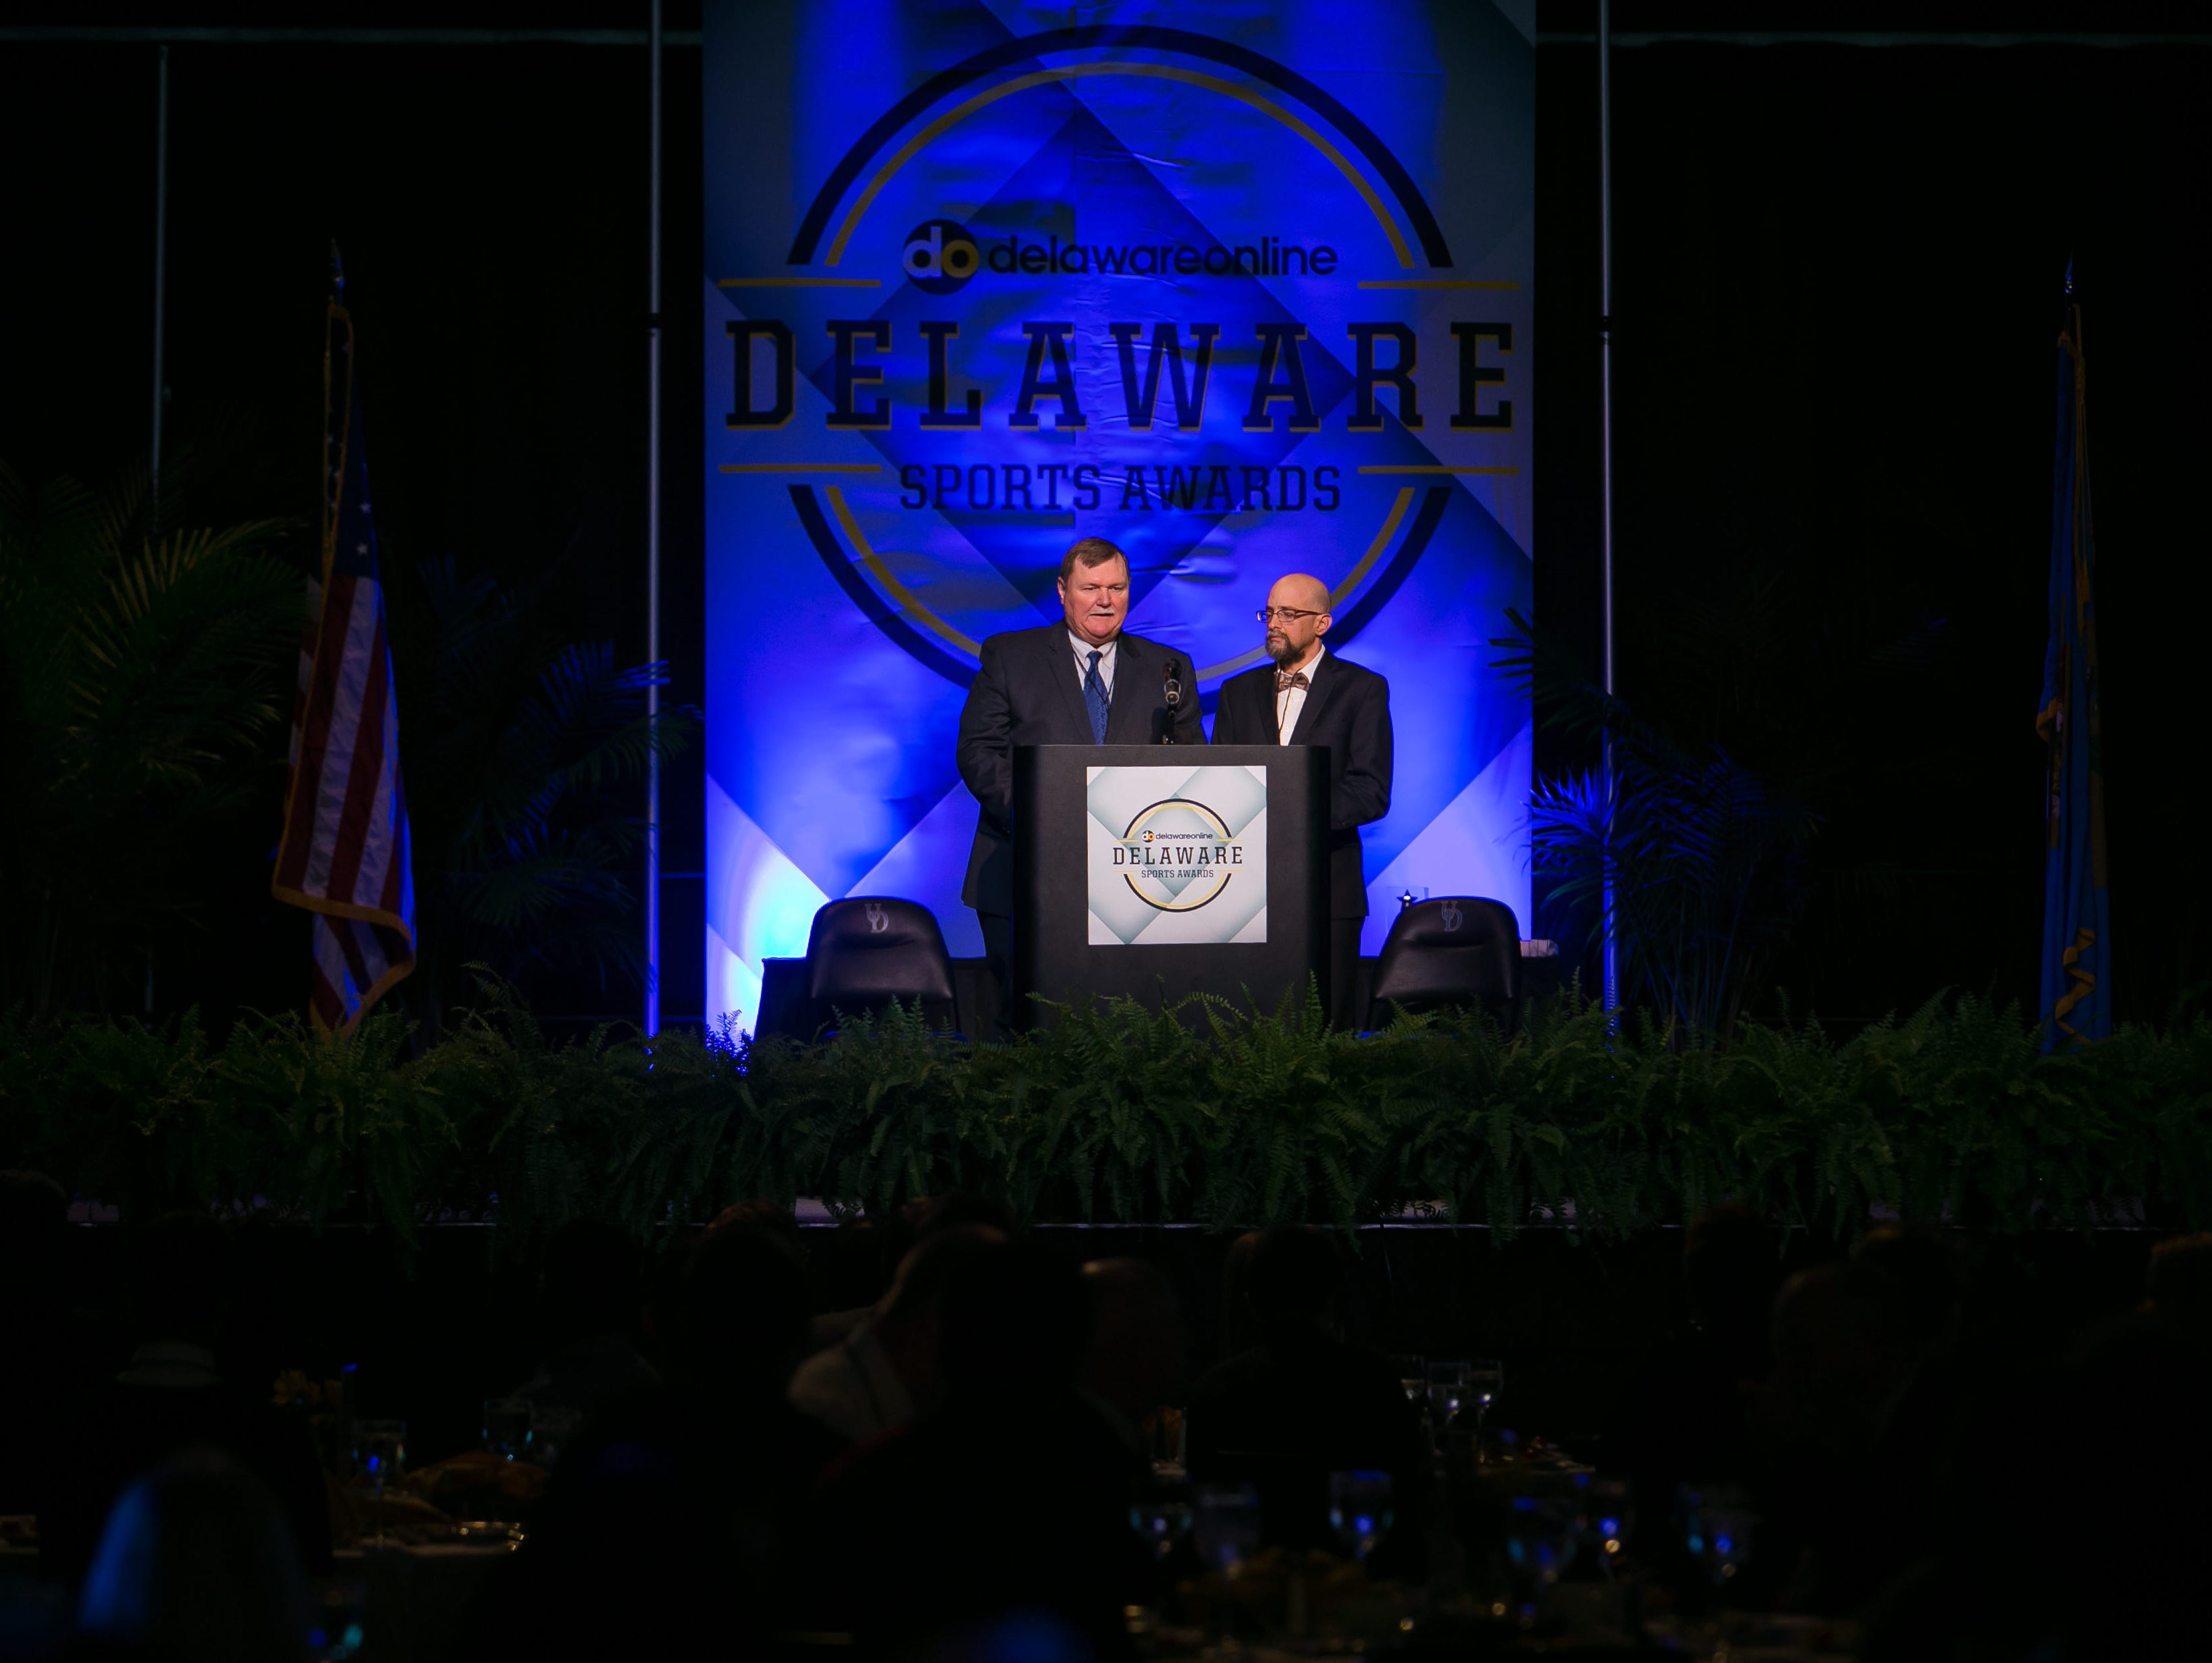 Sports reporter Brad Myers and sports editor Jason Levine welcomes attendees at the Delaware Sports Awards.